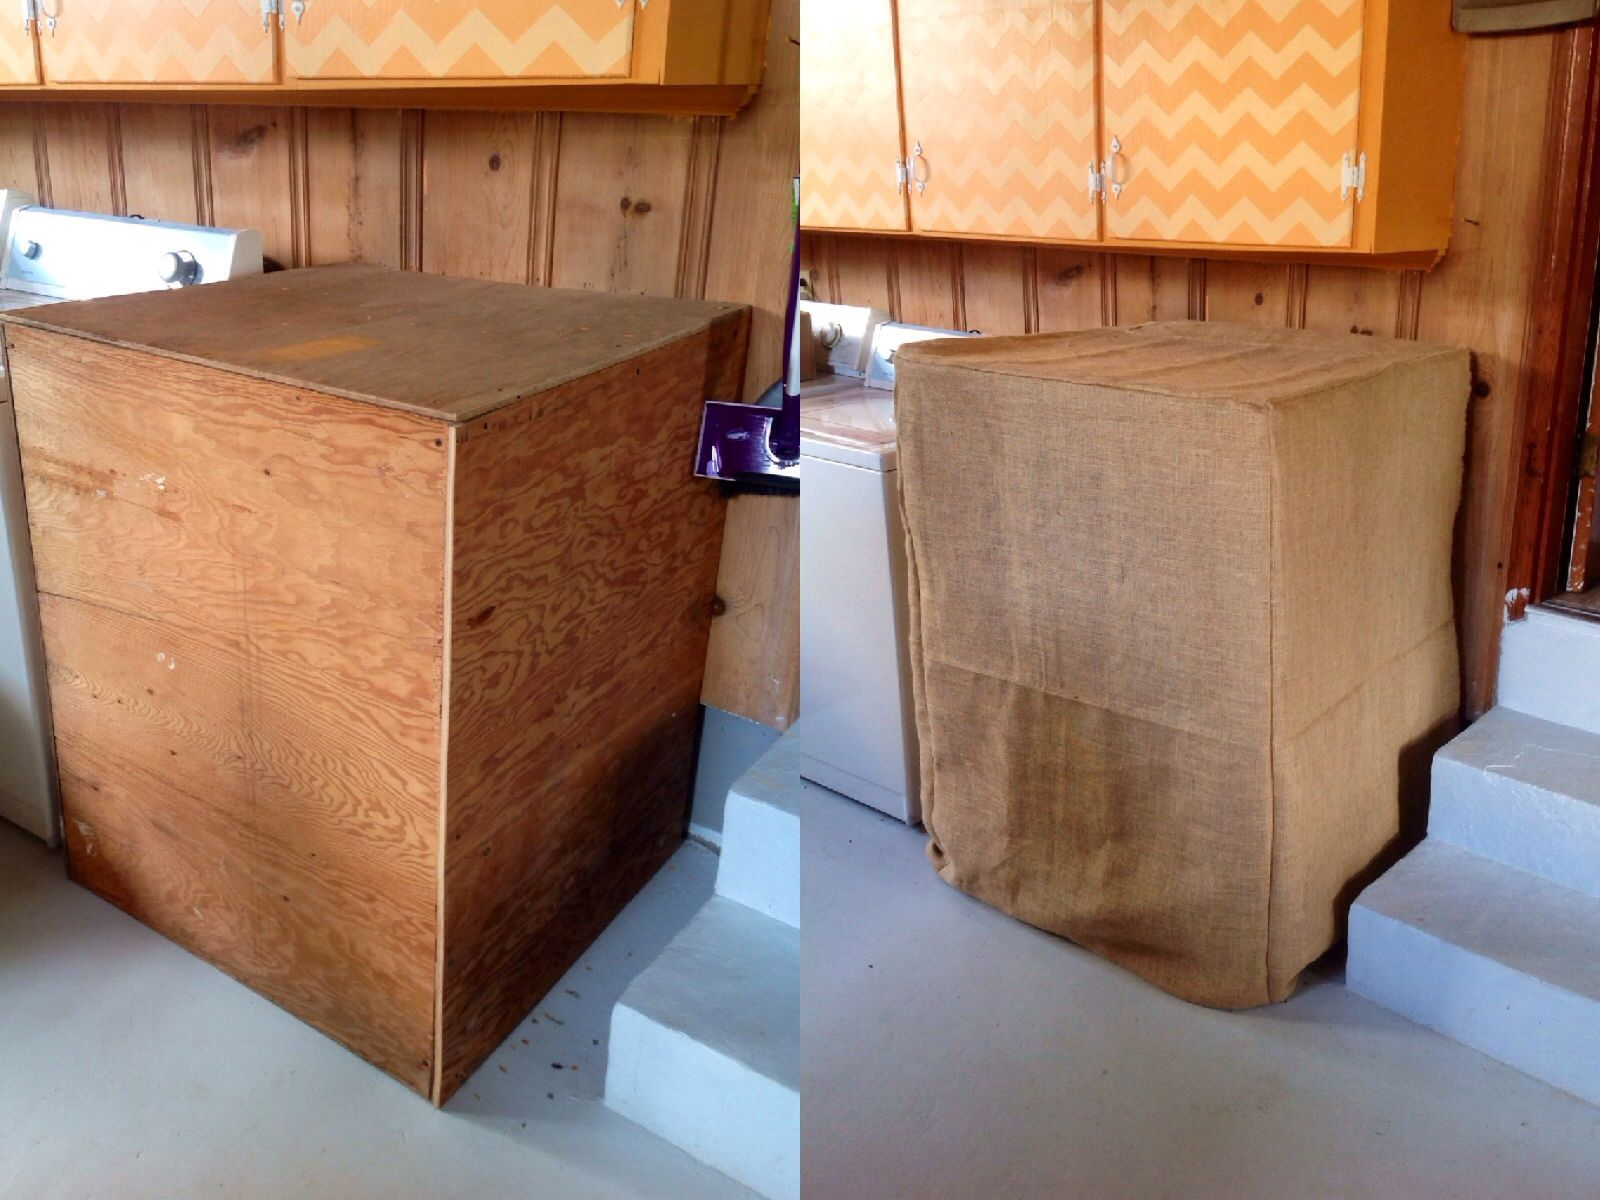 My Hubby Made Me A Box To Cover Our Hot Water Heater I Made A Burlap Slip To Go Over It Sewing The Burlap Was Not Easy Hot Water Heater